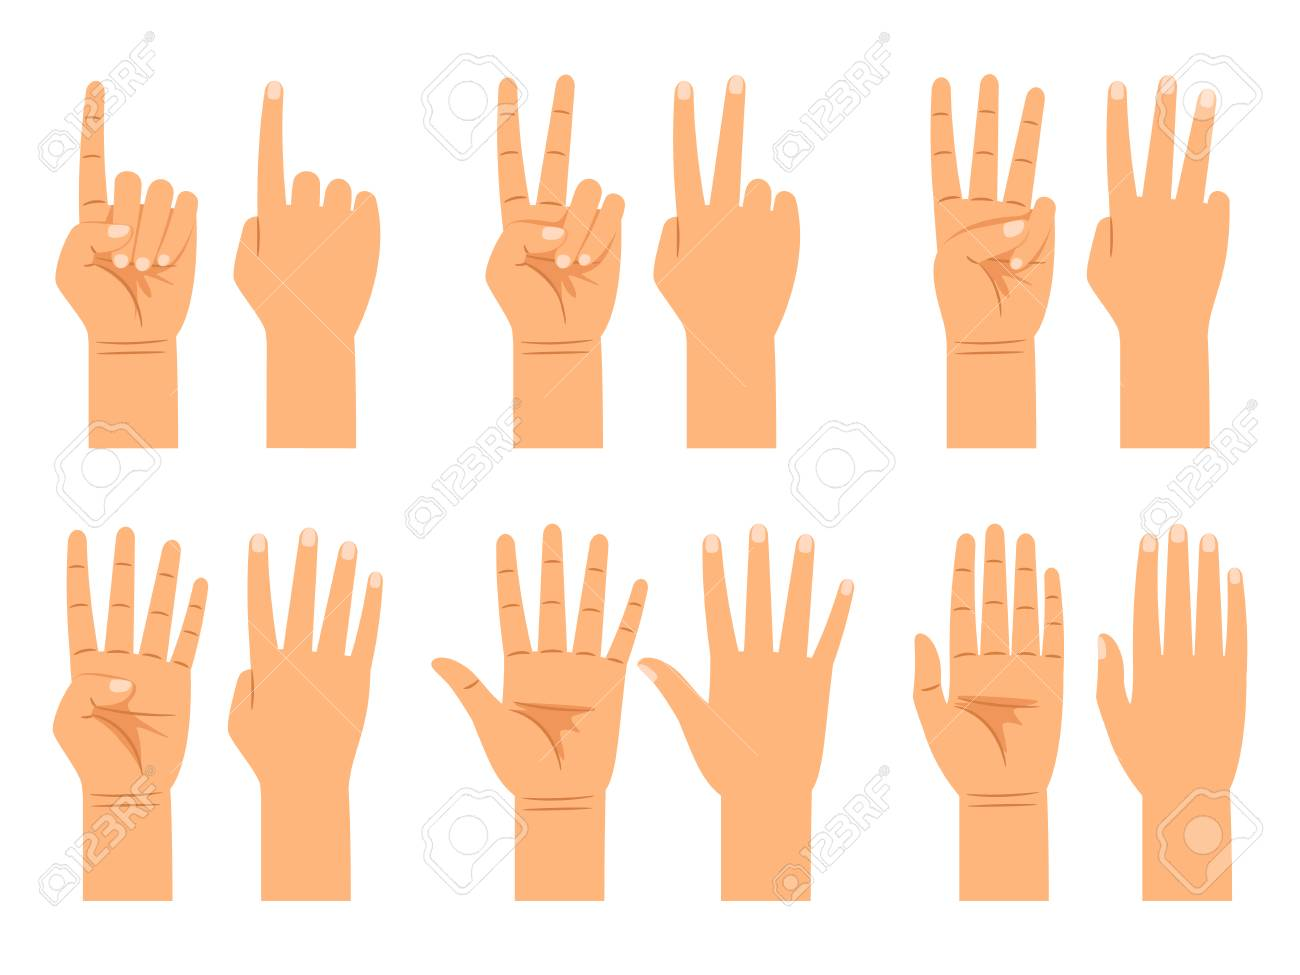 Hand Counting Isolated On White Background Flat Hands Count 1300x975